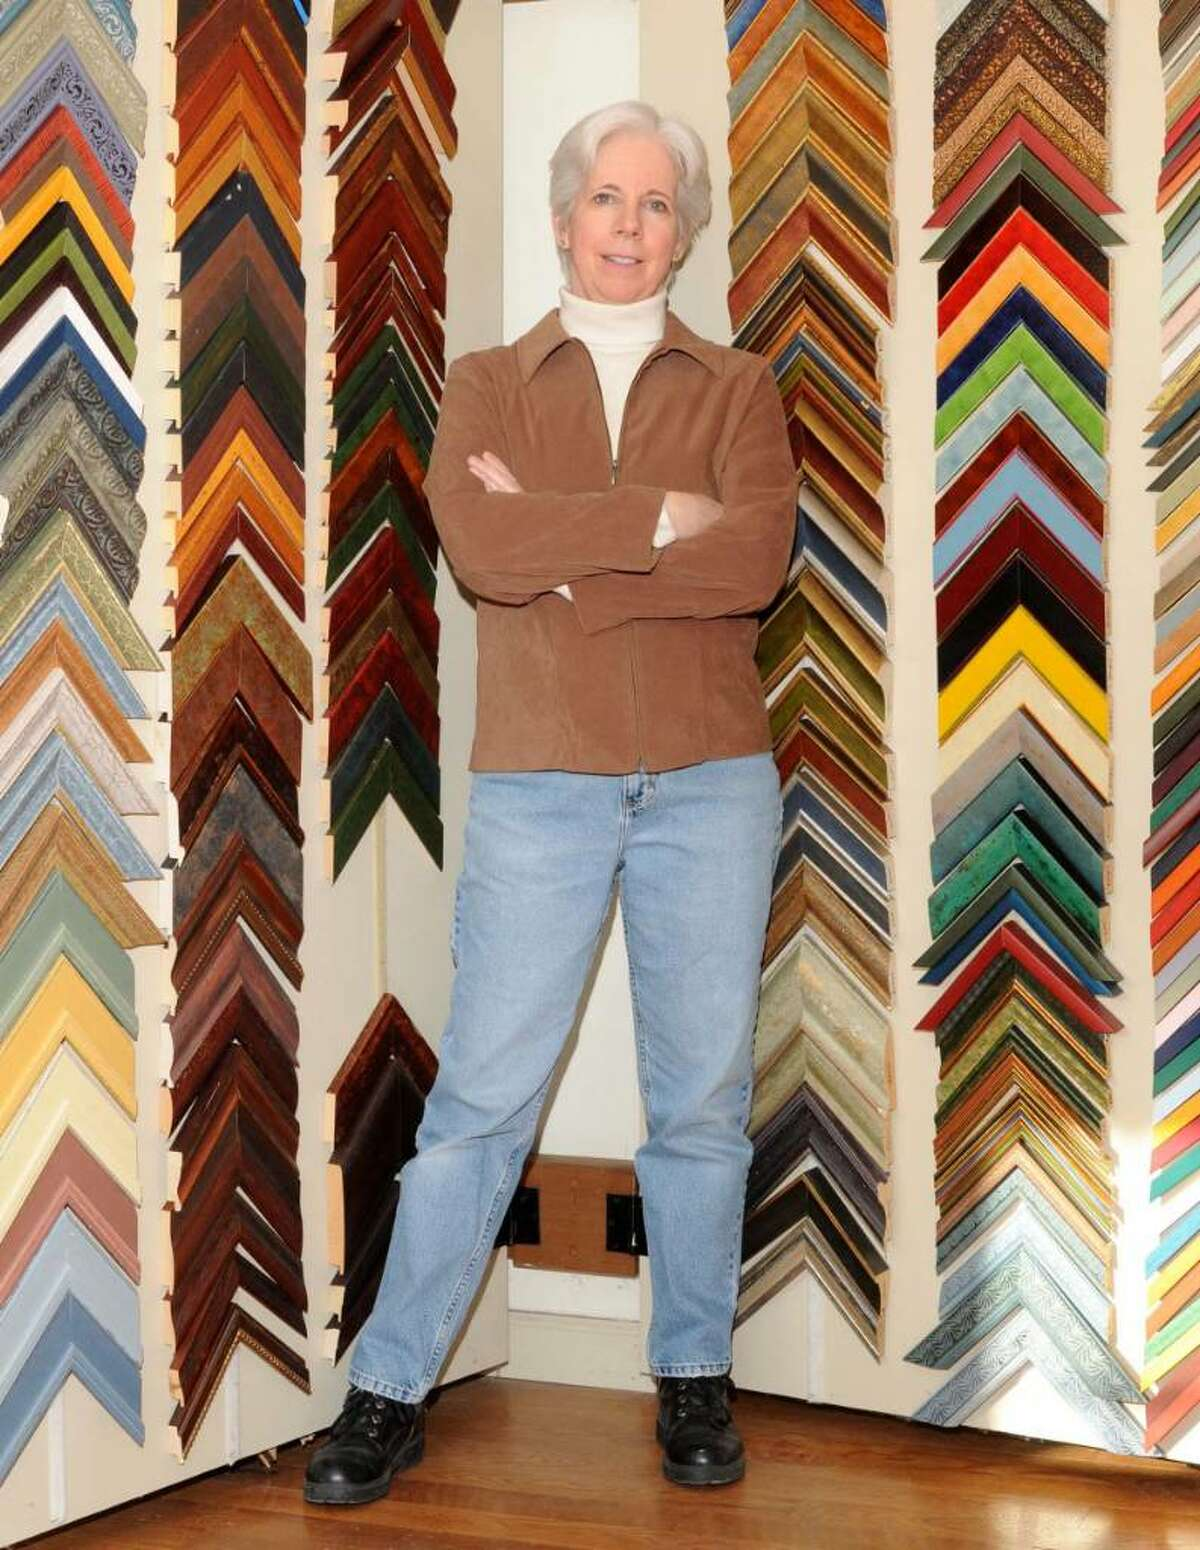 Sue Newton, owner of The Barn Gallery & Framing, in New Fairfield, CT, with some of the sample frame corners in her shop, on Friday, Jan. 29, 2010.